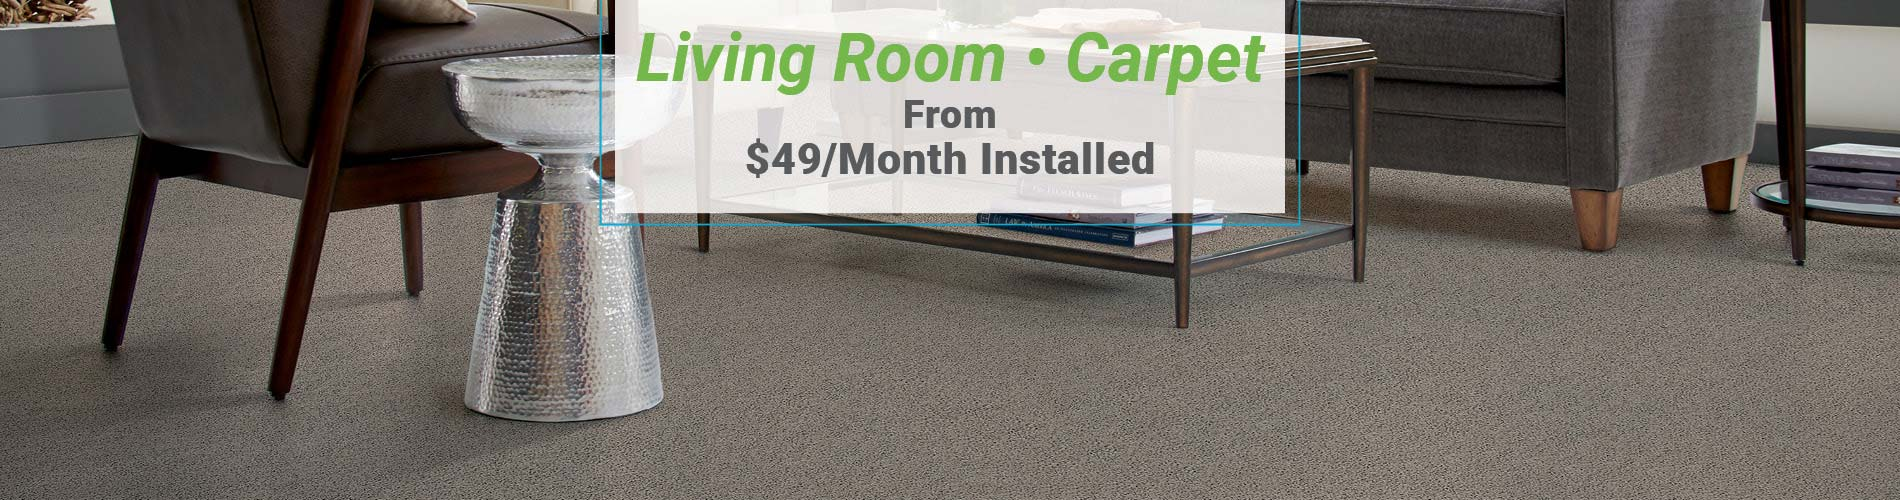 Living Room Carpet from $49/month installed at Erskine Interiors